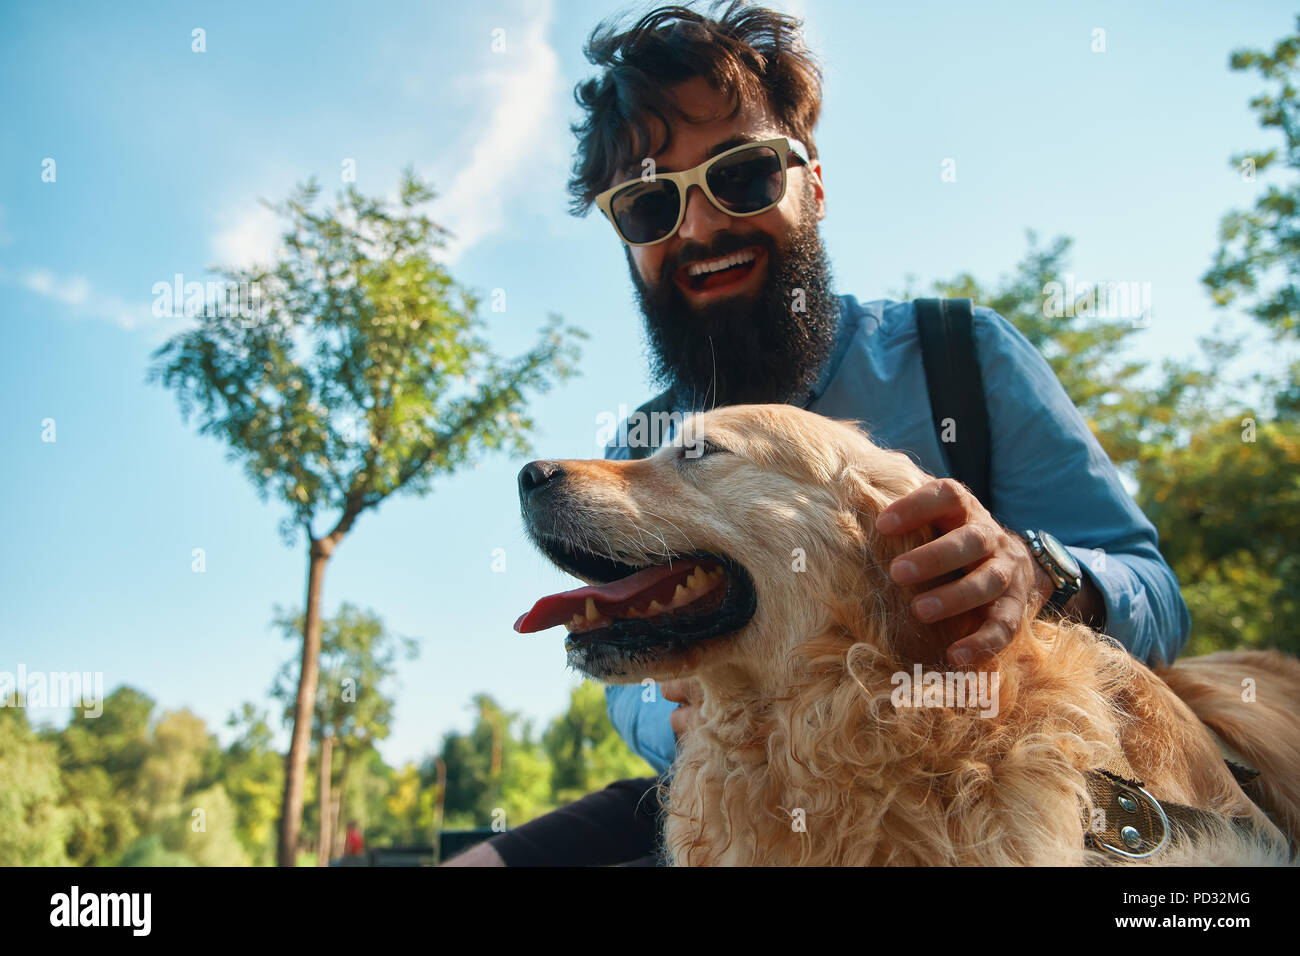 Man and dog having fun, playing, making funny faces while restin Stock Photo